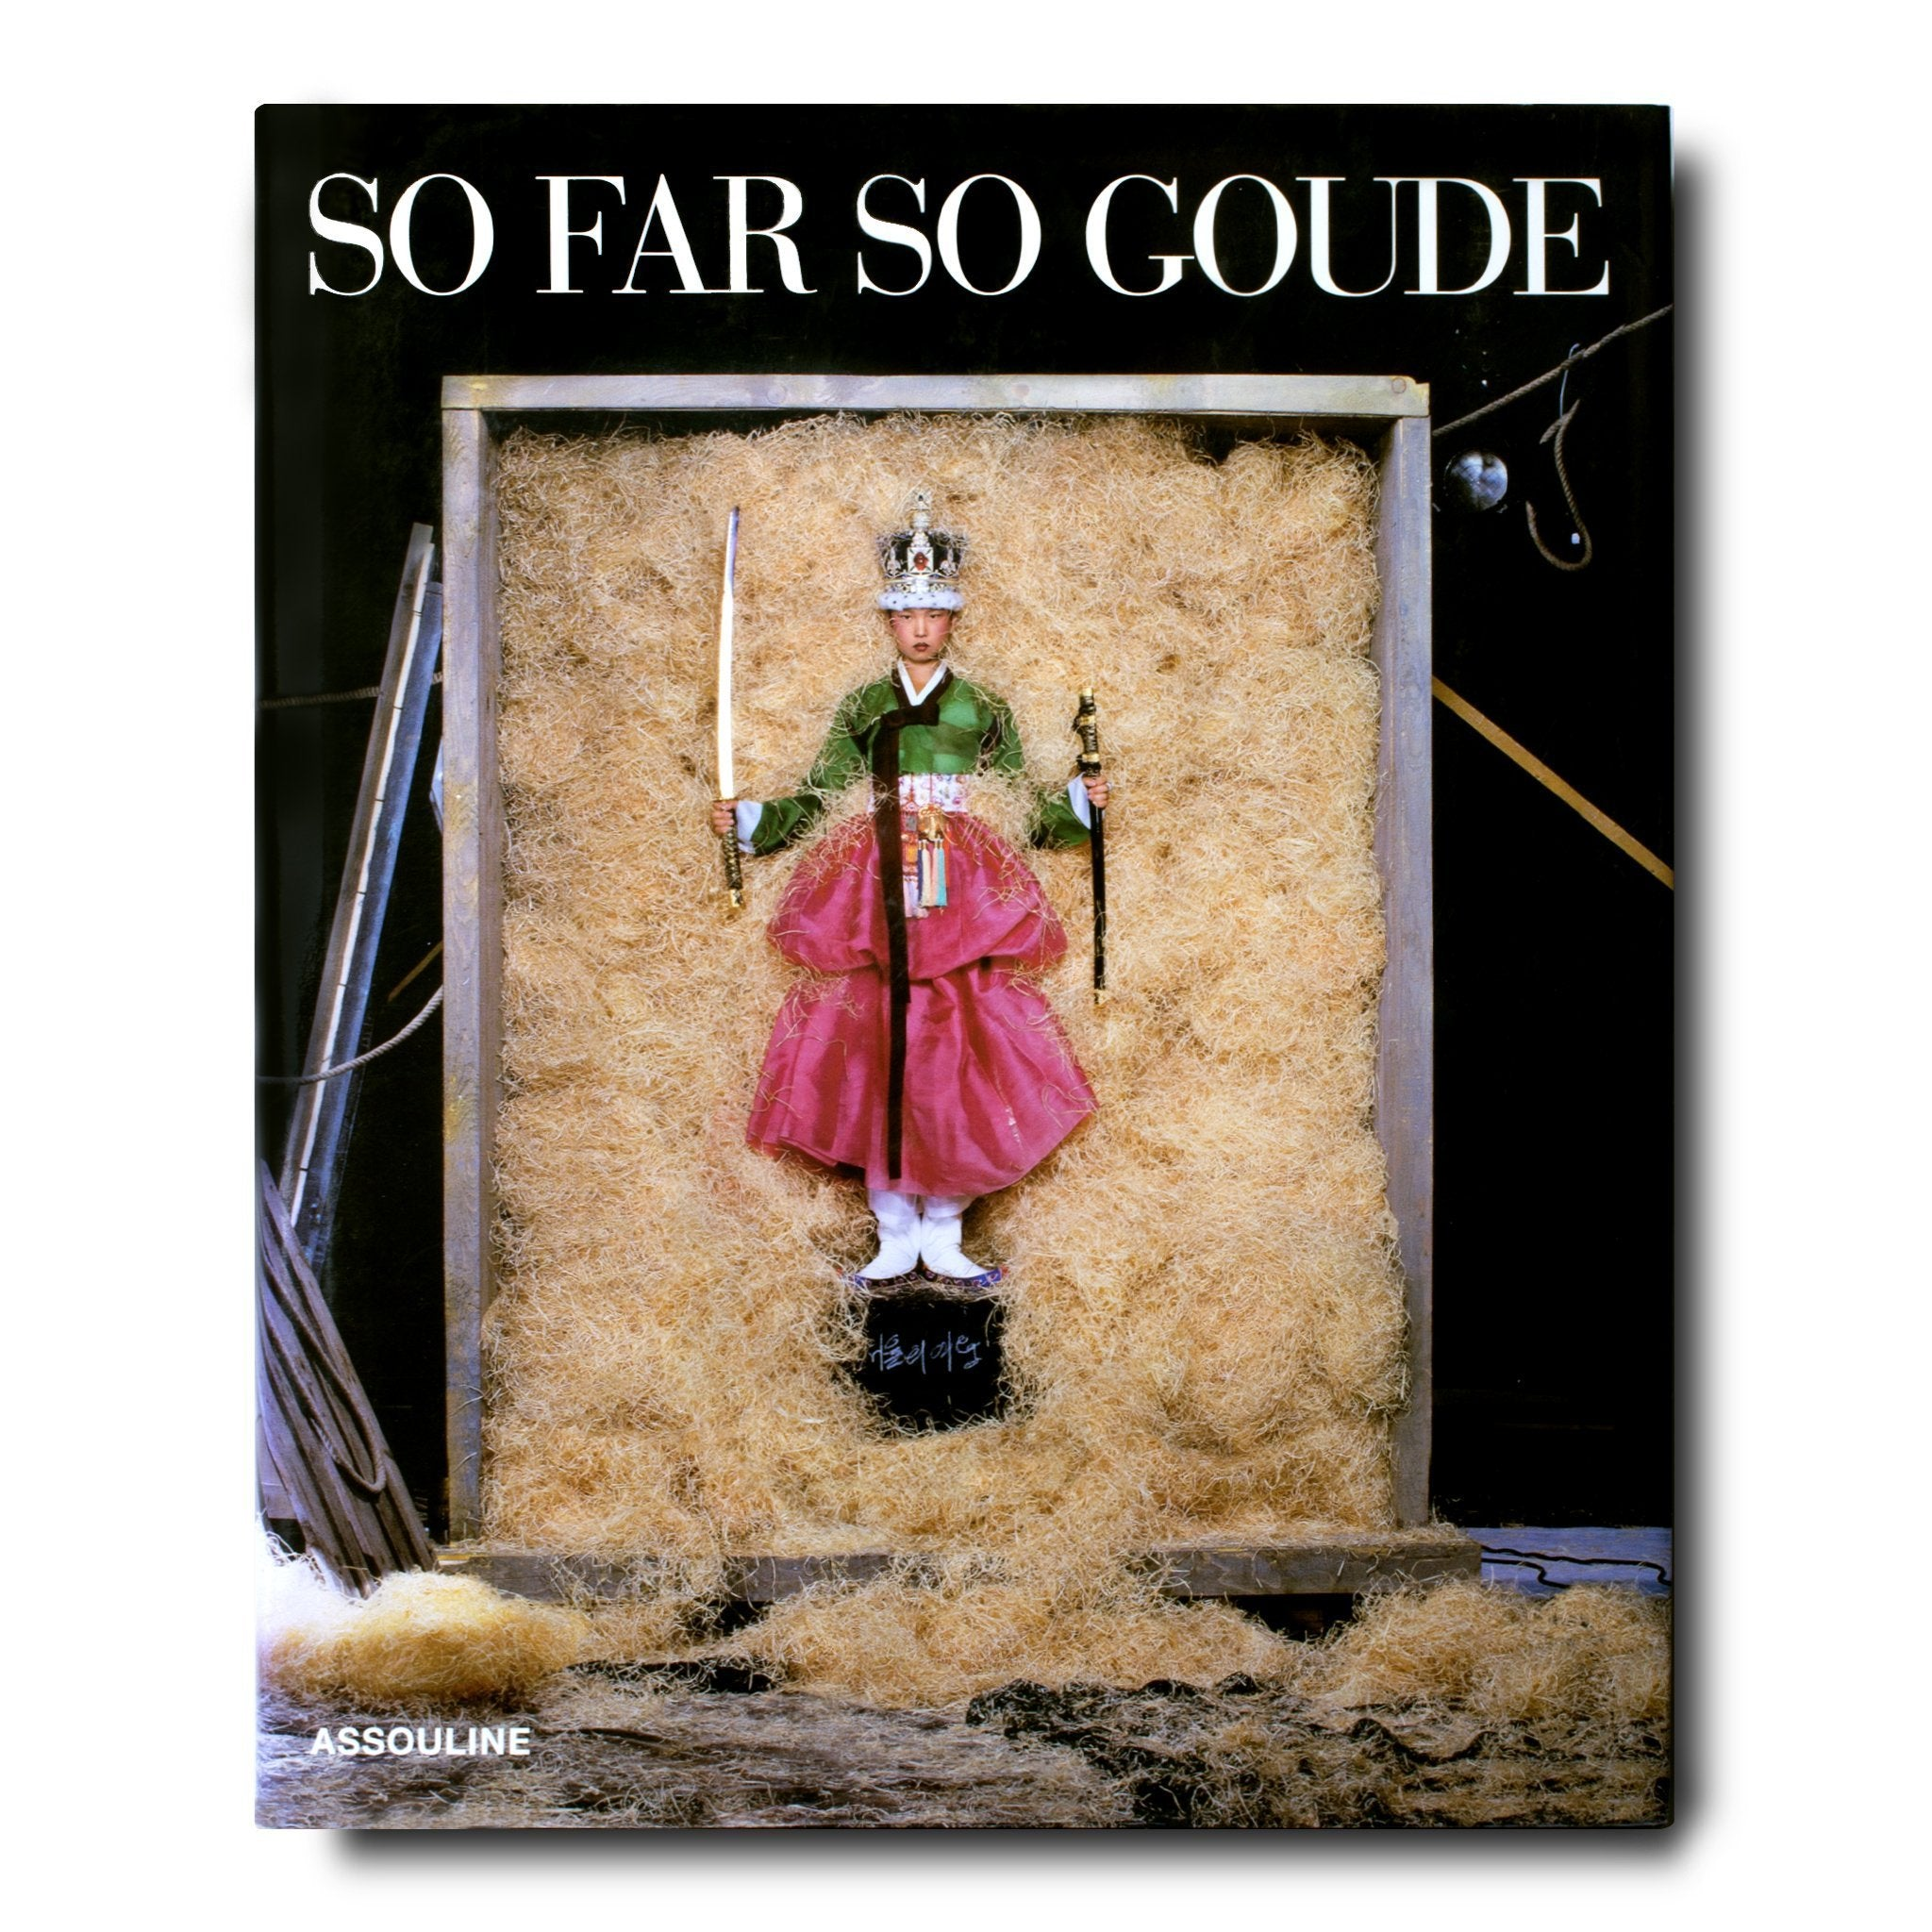 So Far So Goude - Assouline